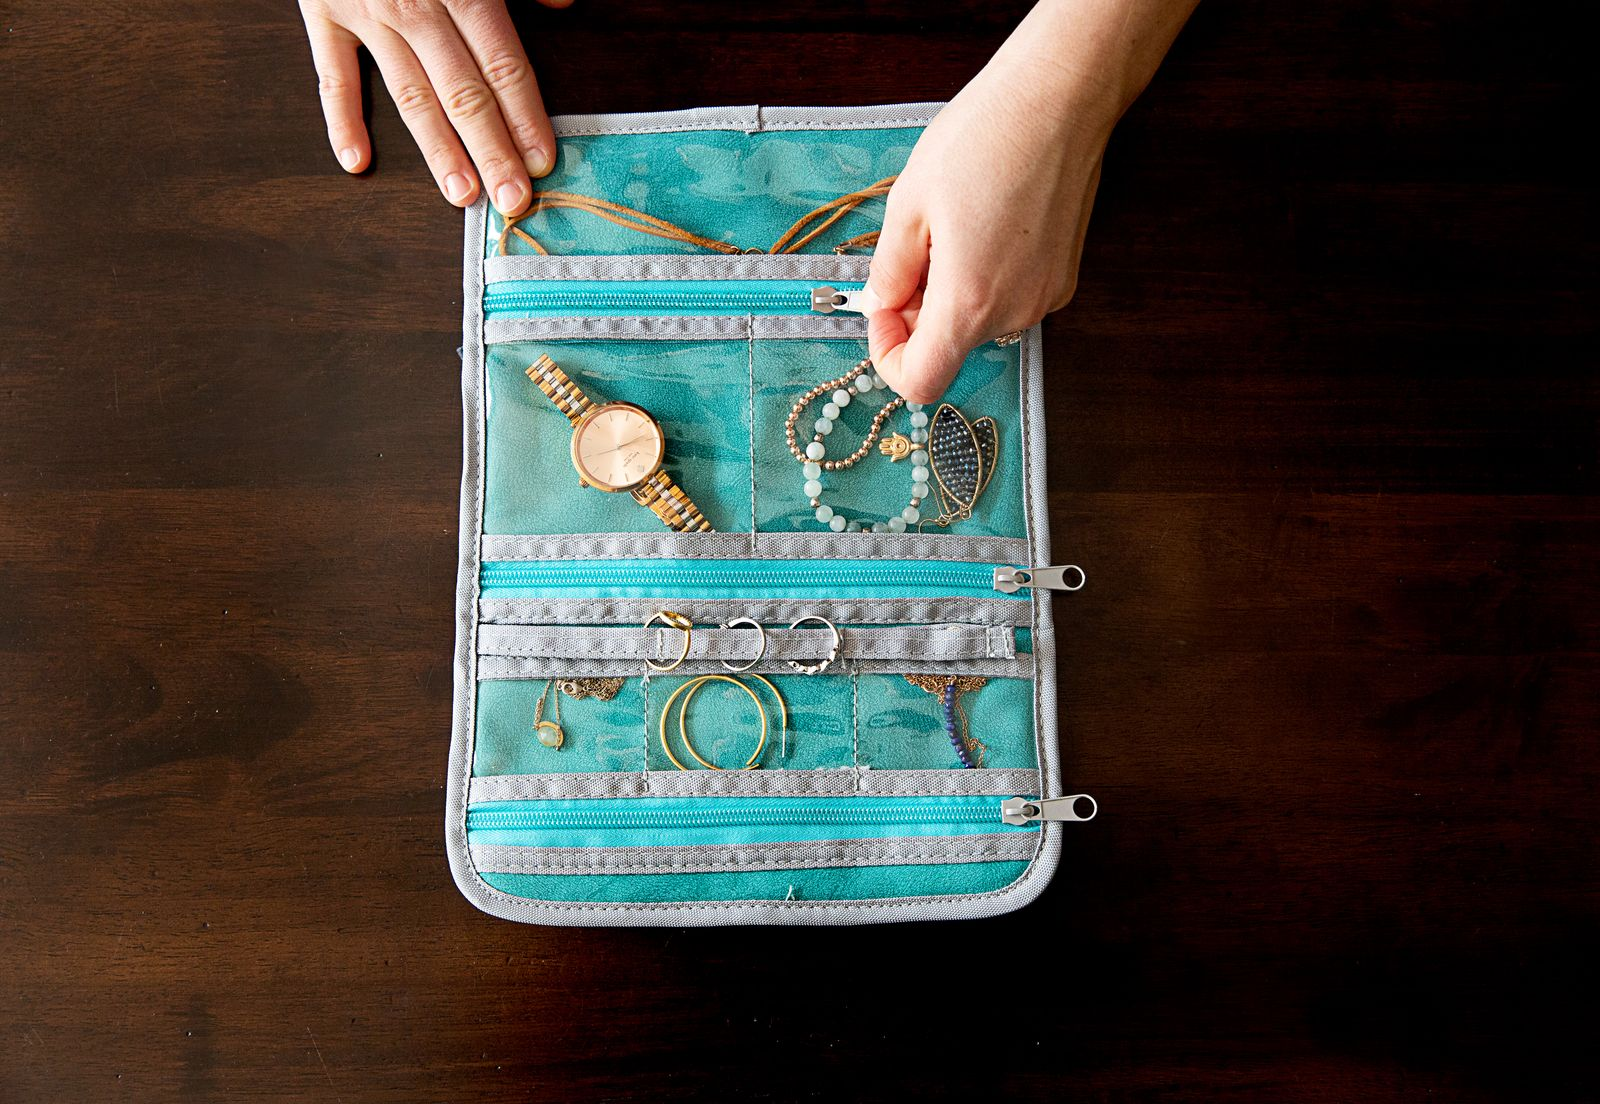 Accessories organized in a travel jewelry roll